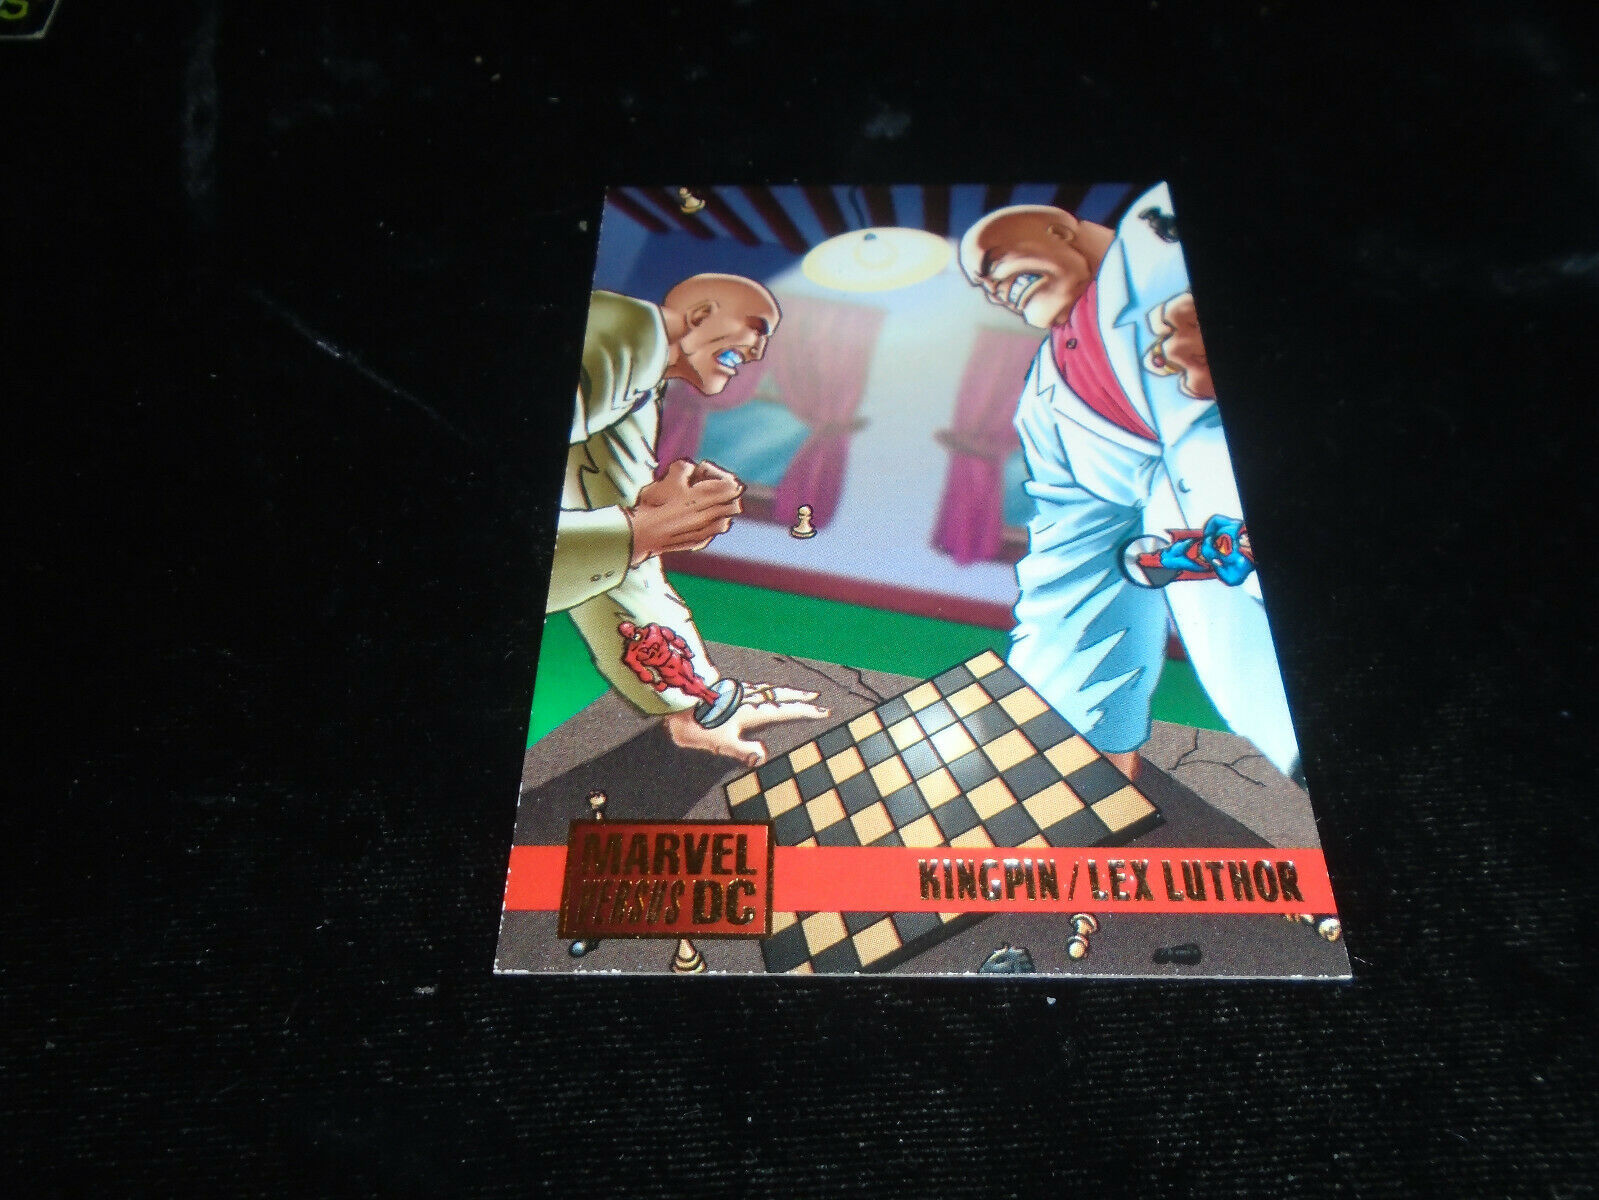 1995 DC Versus Marvel Fleer SkyBox Card #97 Kingpin Vs. Lex Luthor image 1